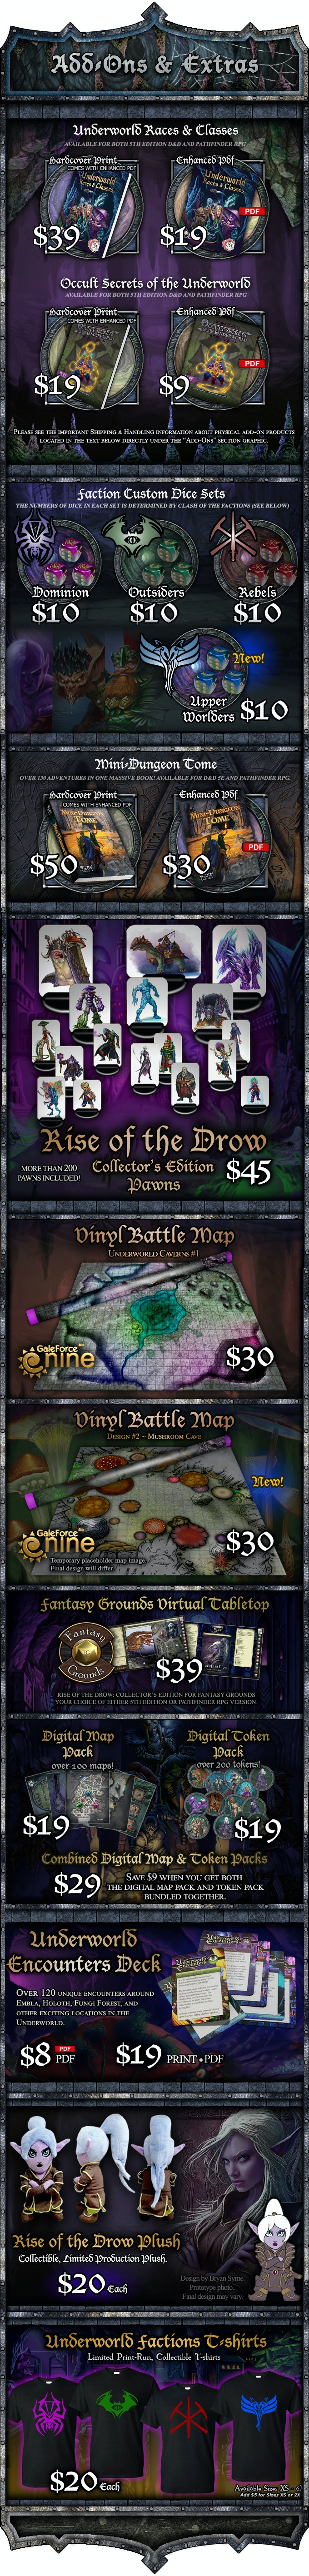 Rise of the Drow: Collector's Edition for D&D 5E or PFRPG by